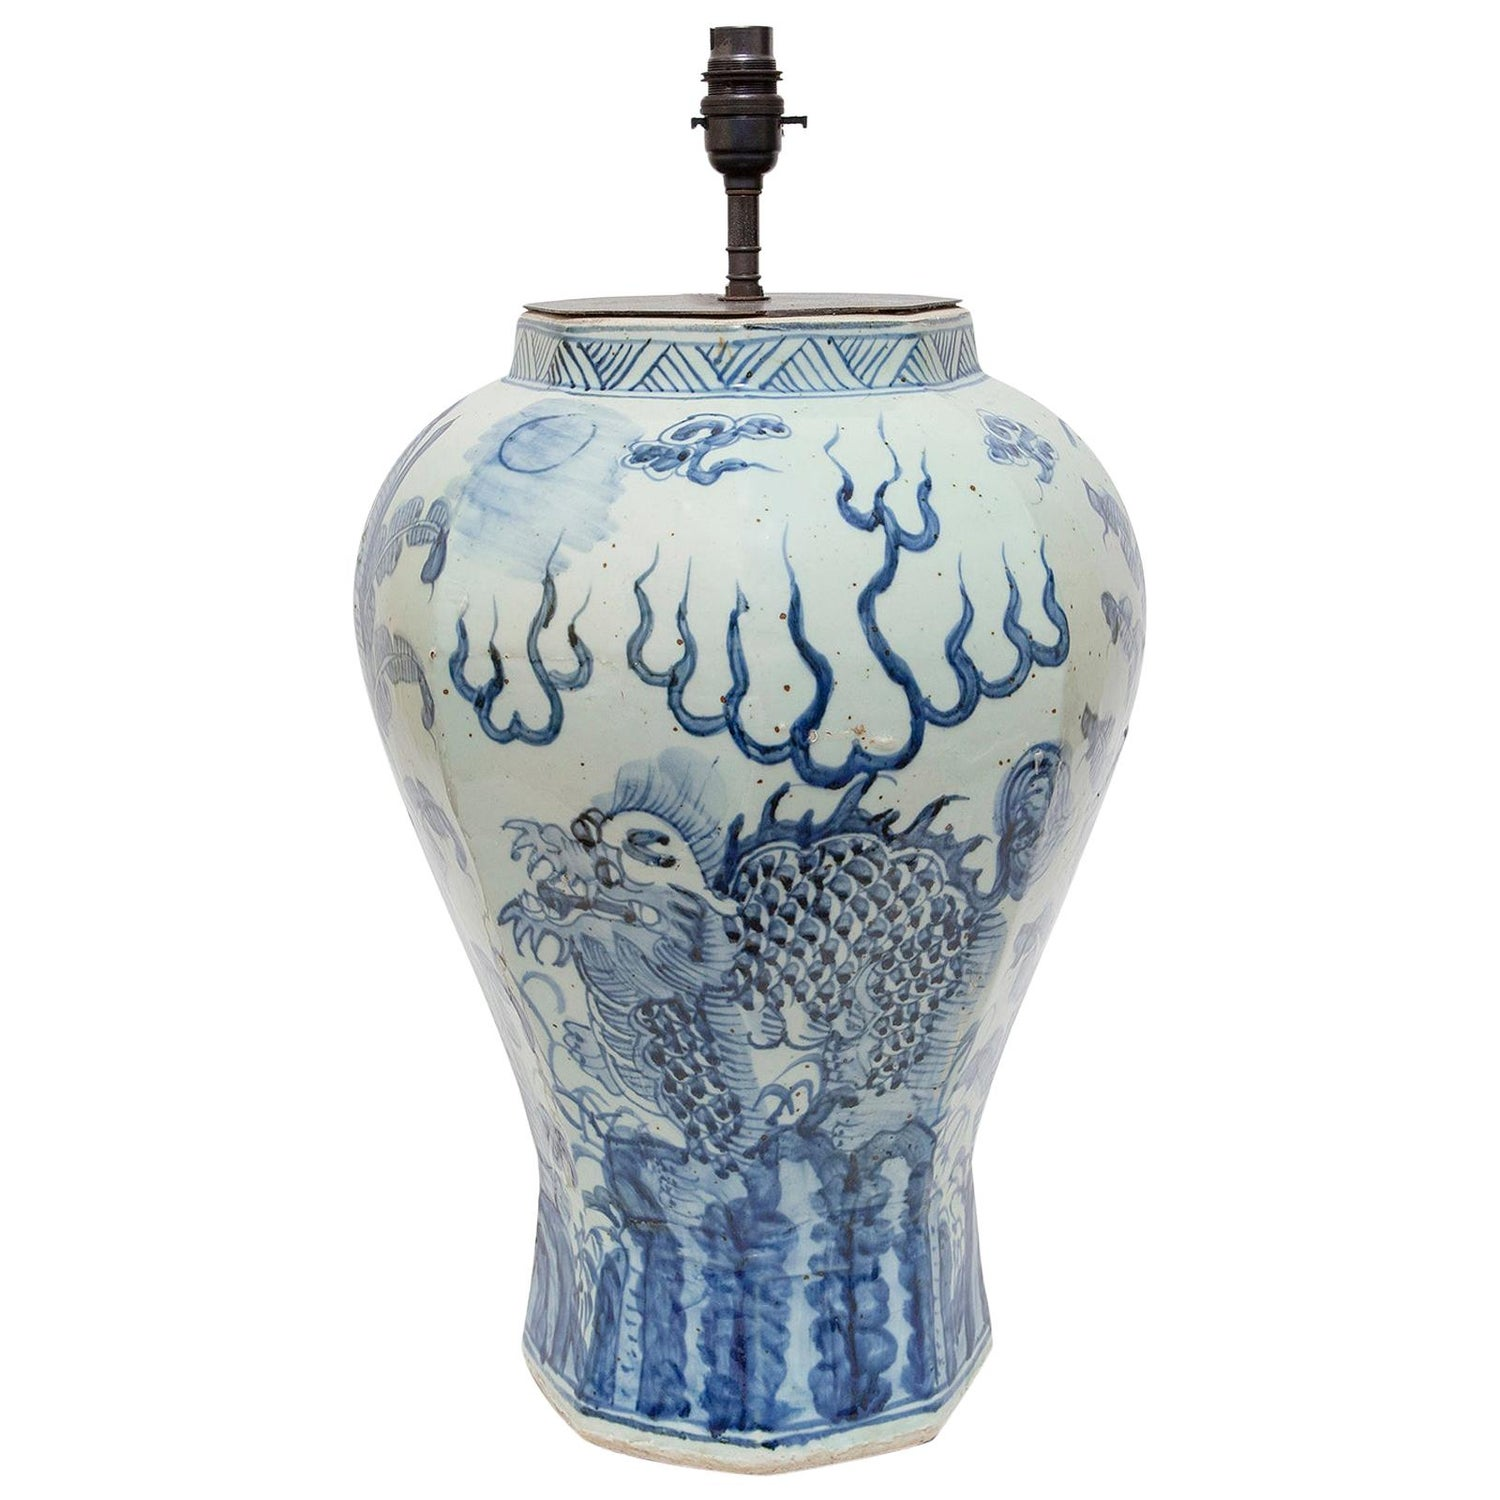 Lamp Table Chinese Porcelain Vase Blue and White Dragon Upcycled